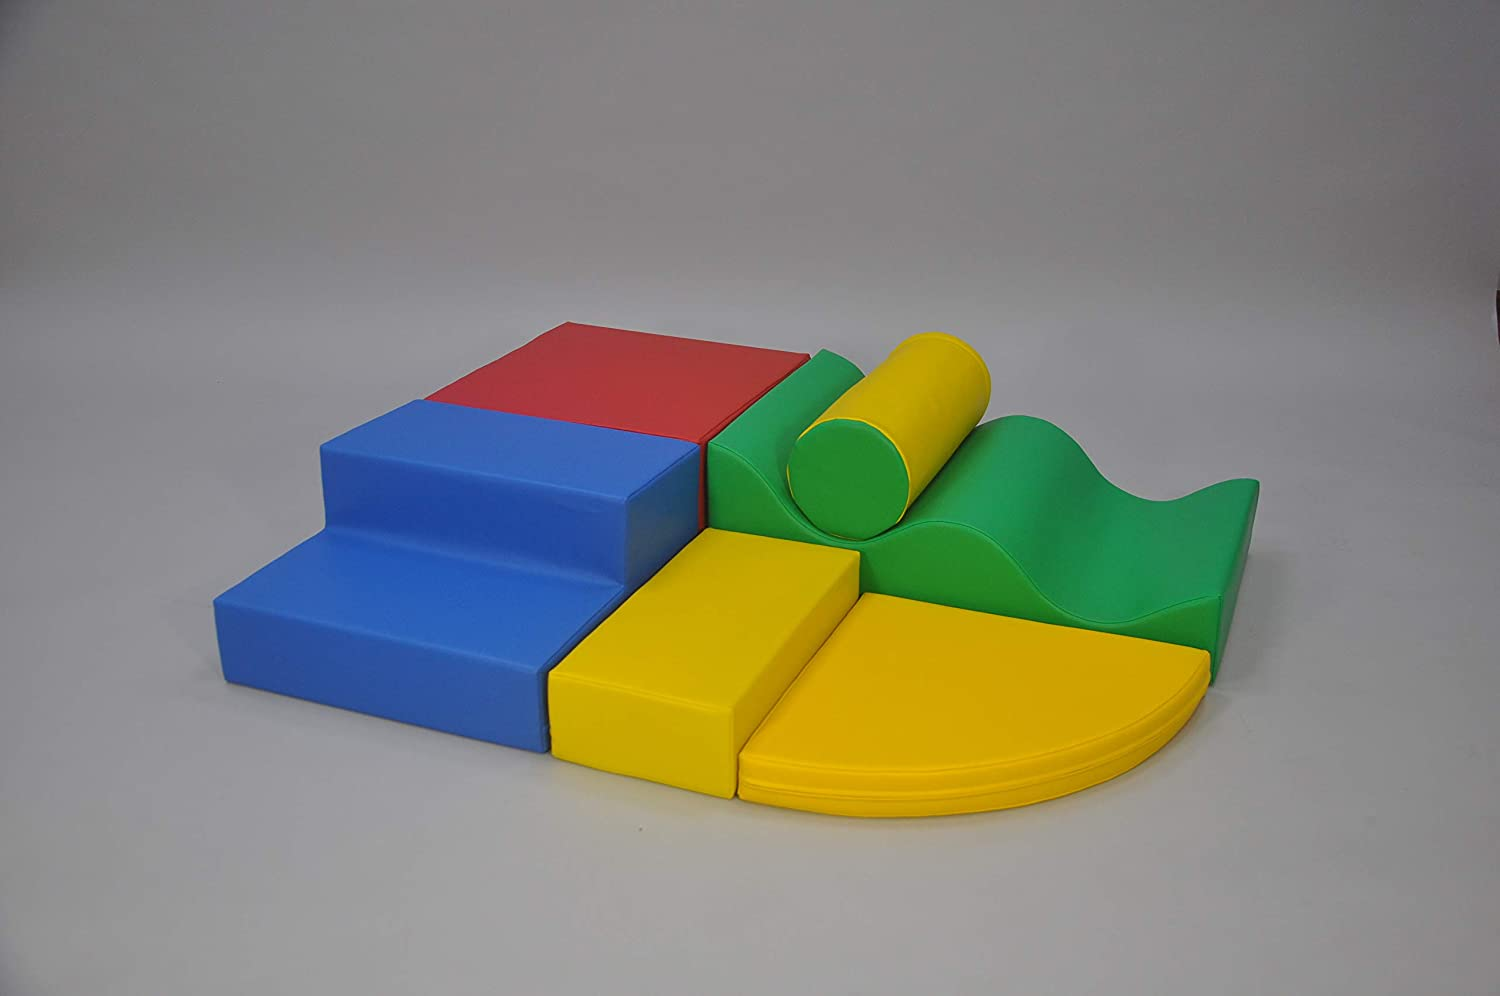 XL Soft Play Forms, Softzone Soft Play Equipment, Playground for Kids  6 Forms